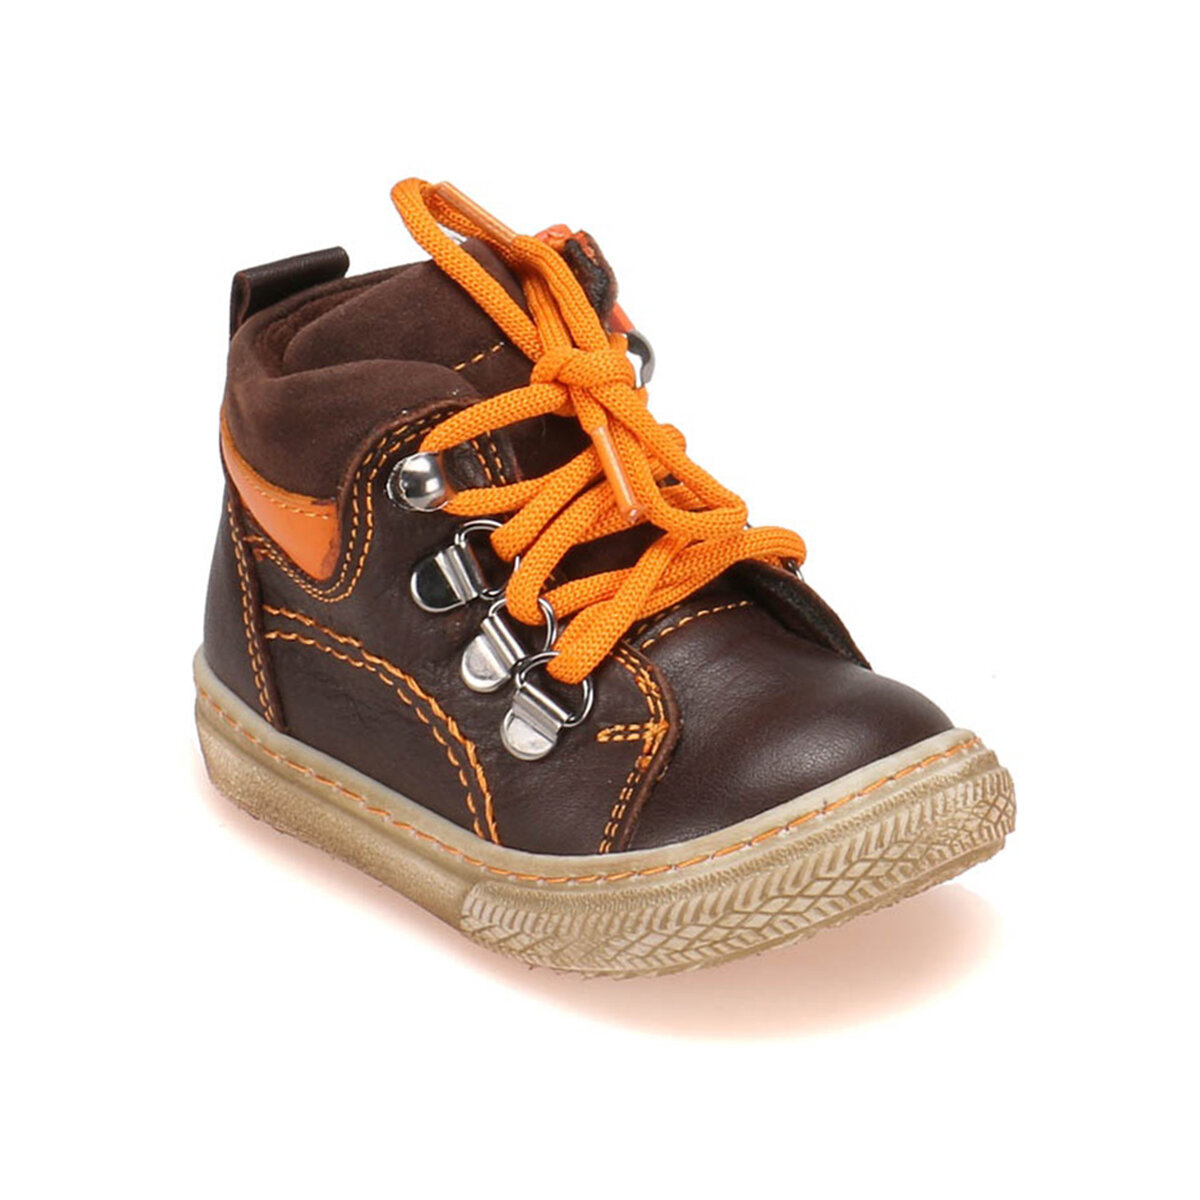 FLO 52. 507586.B Brown Male Child Boots Polaris